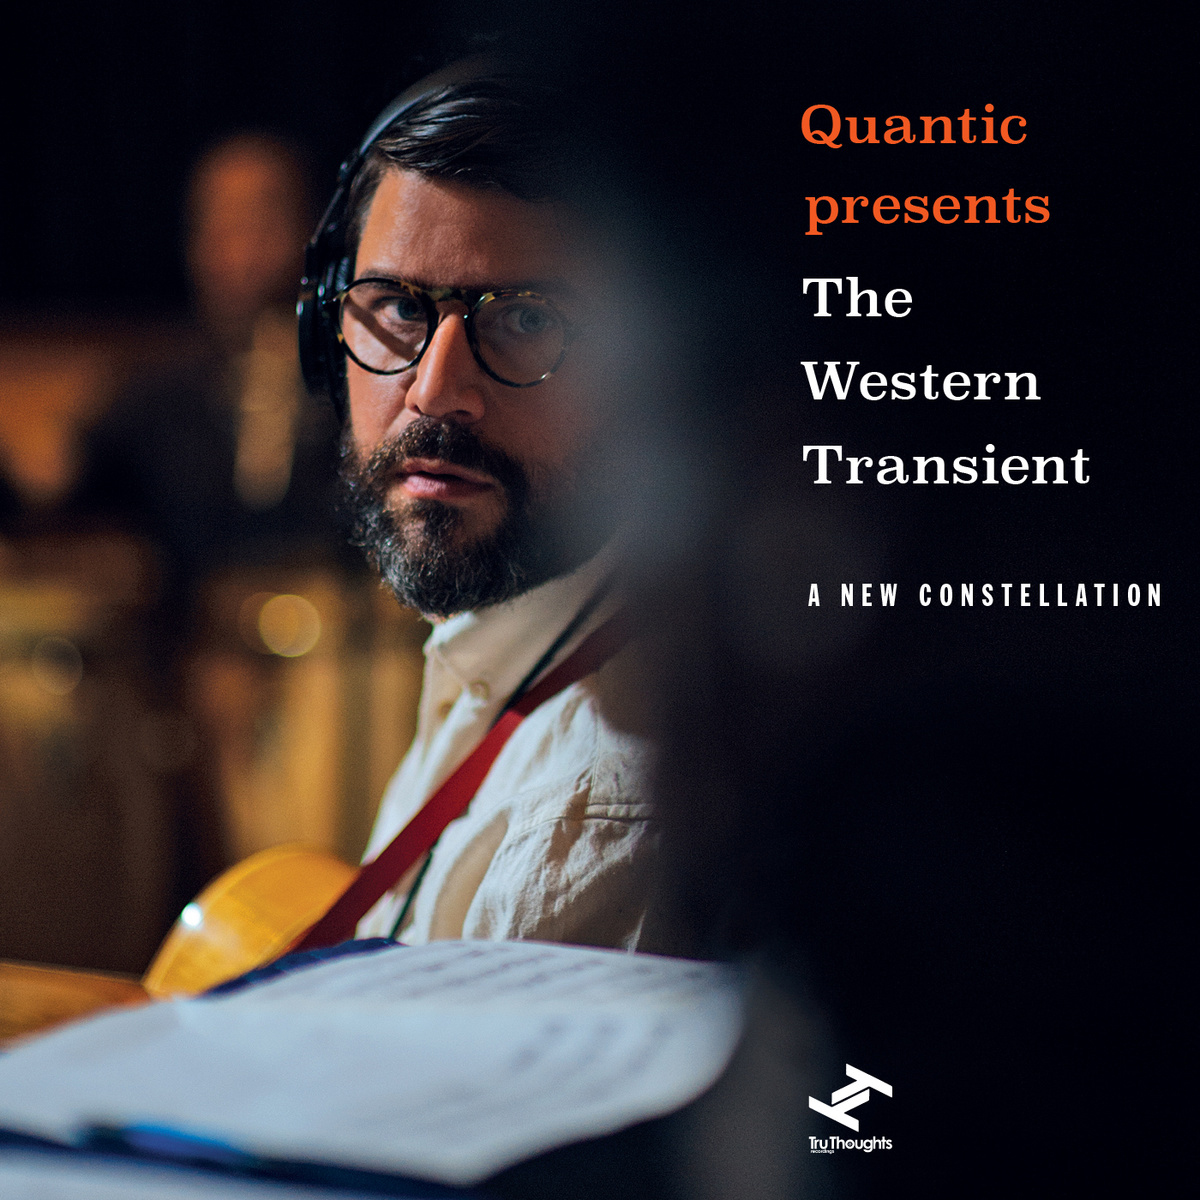 QUANTIC presents THE WESTERN TRANSIENT - A NEW CONSTELLATION : TRU THOUGHTS (UK)